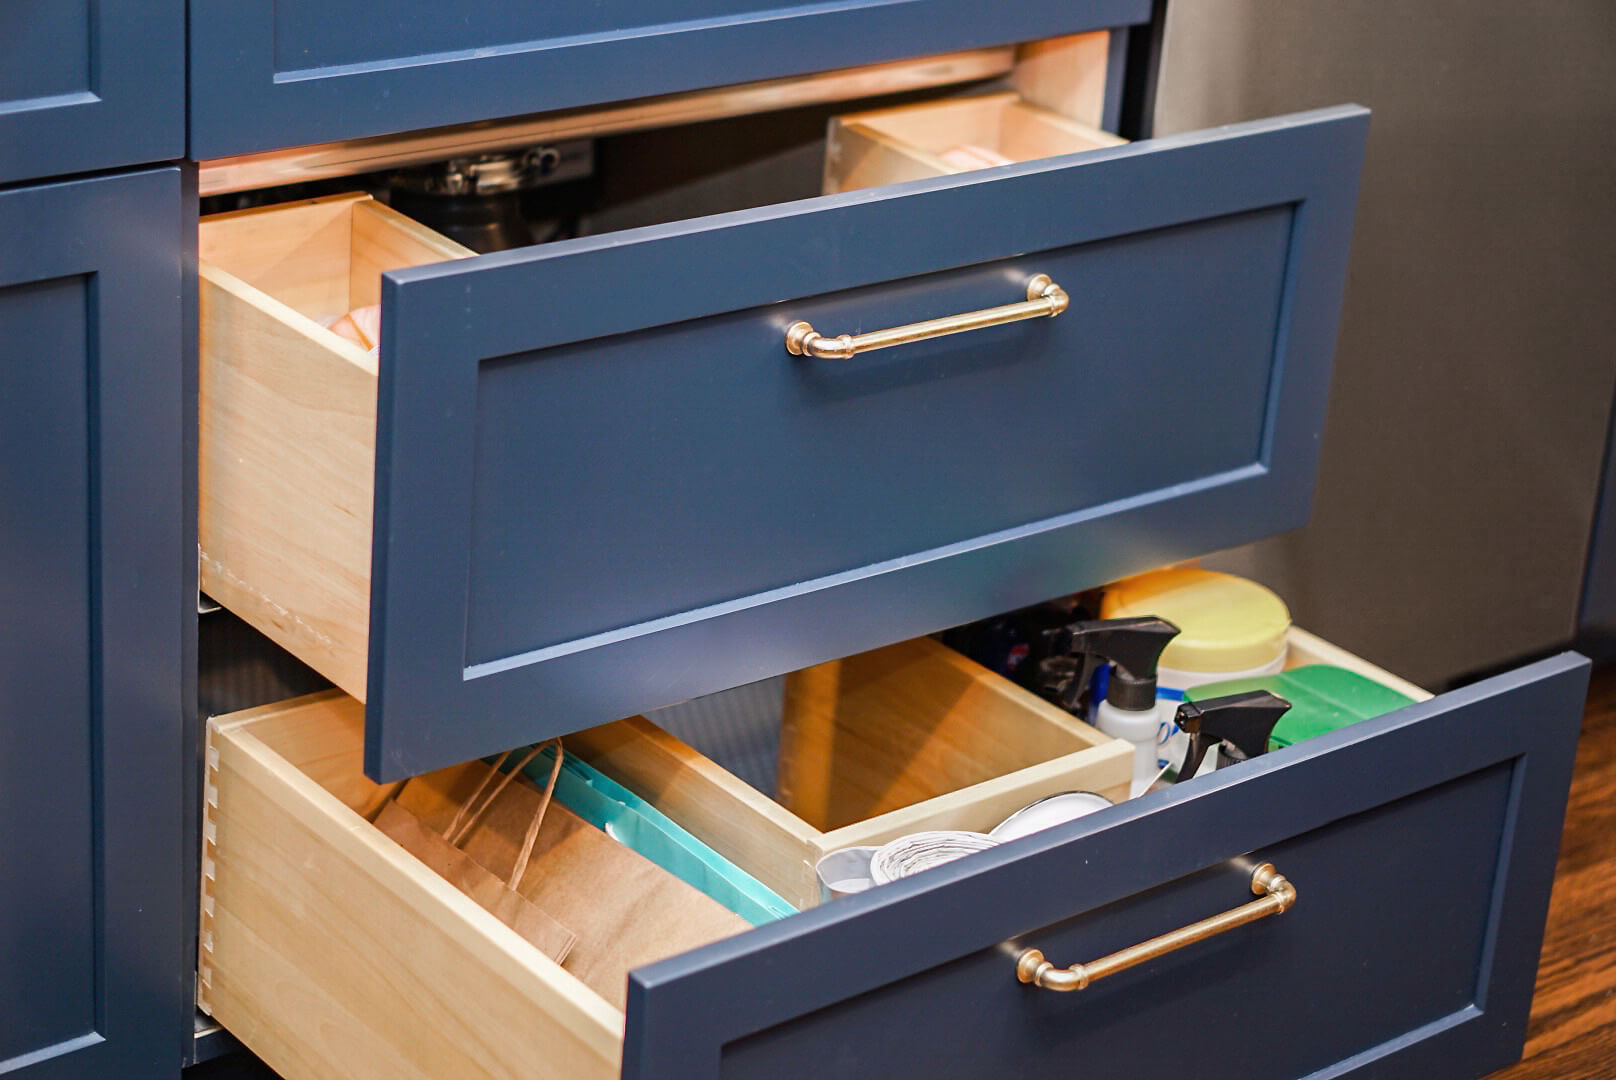 The custom sized plumbing drawers to fit around the garbage disposal and plumbing fixtures.